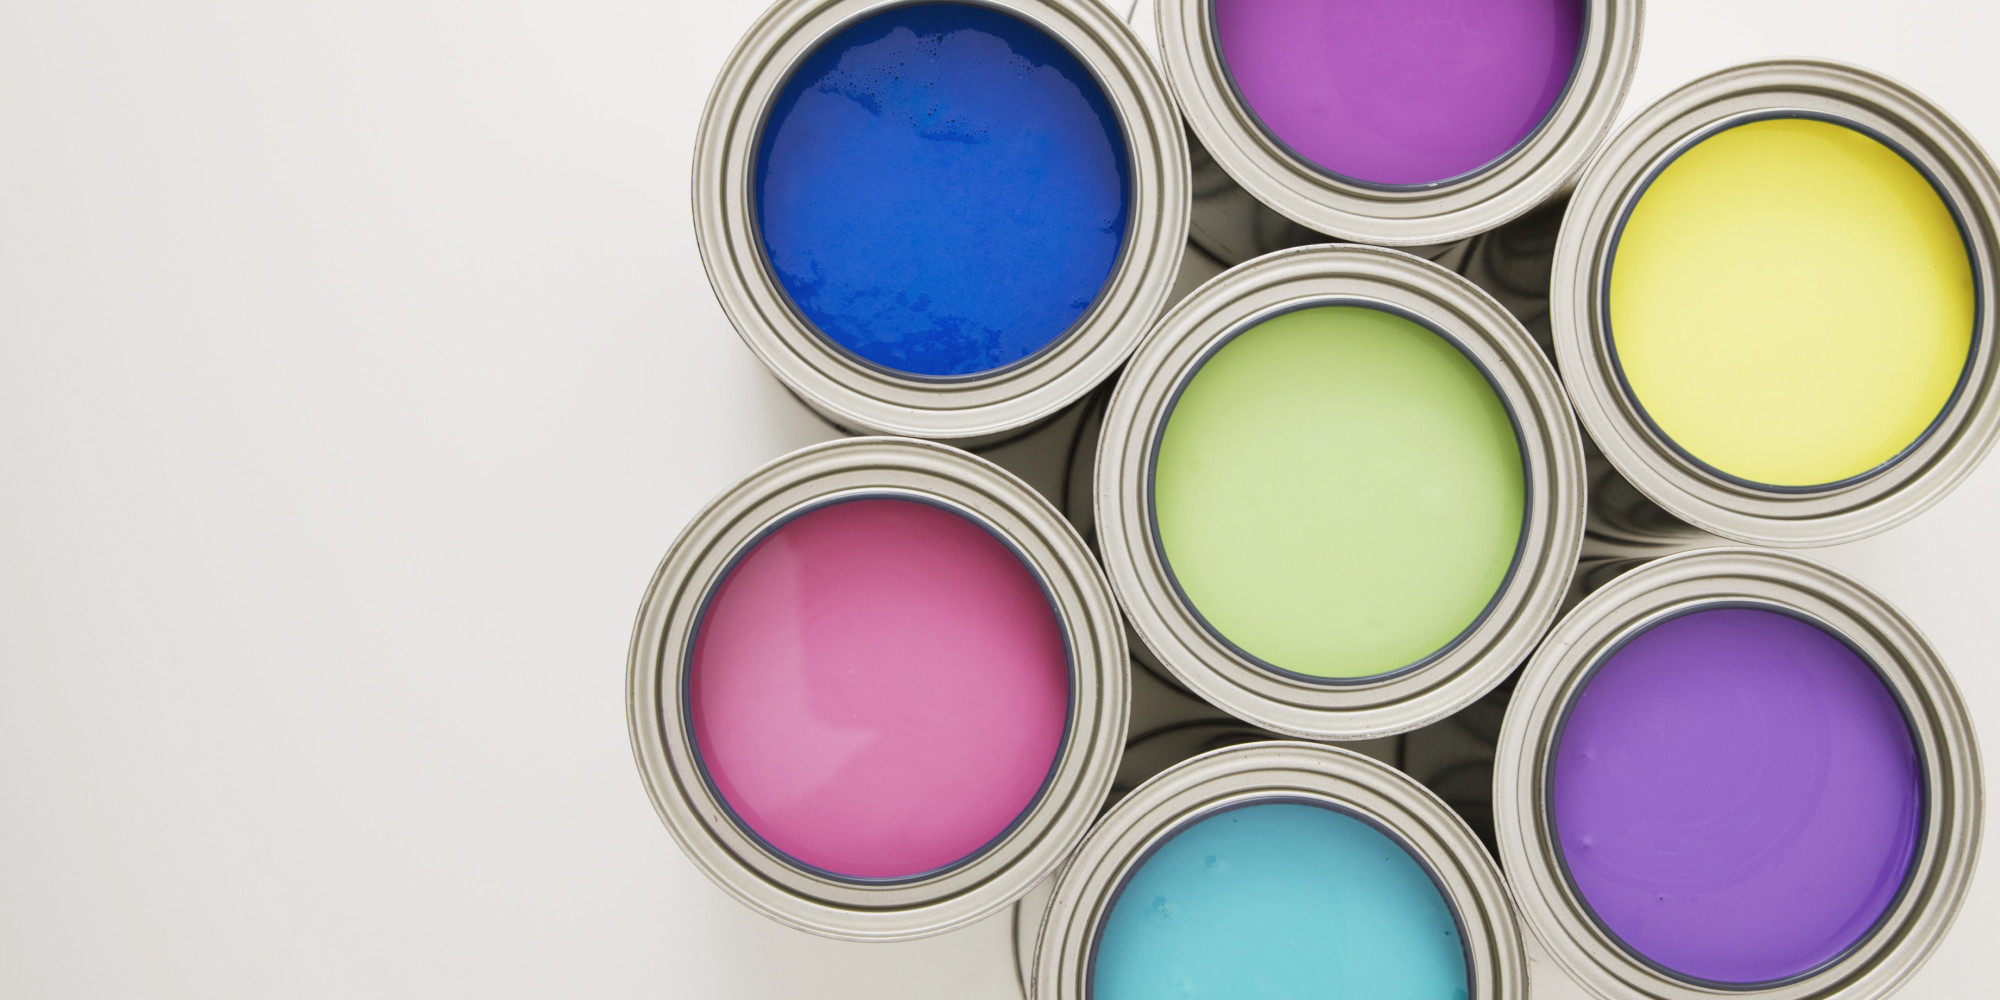 Painting Colors 11 pinterest boards filled with hundreds of paint ideas | huffpost